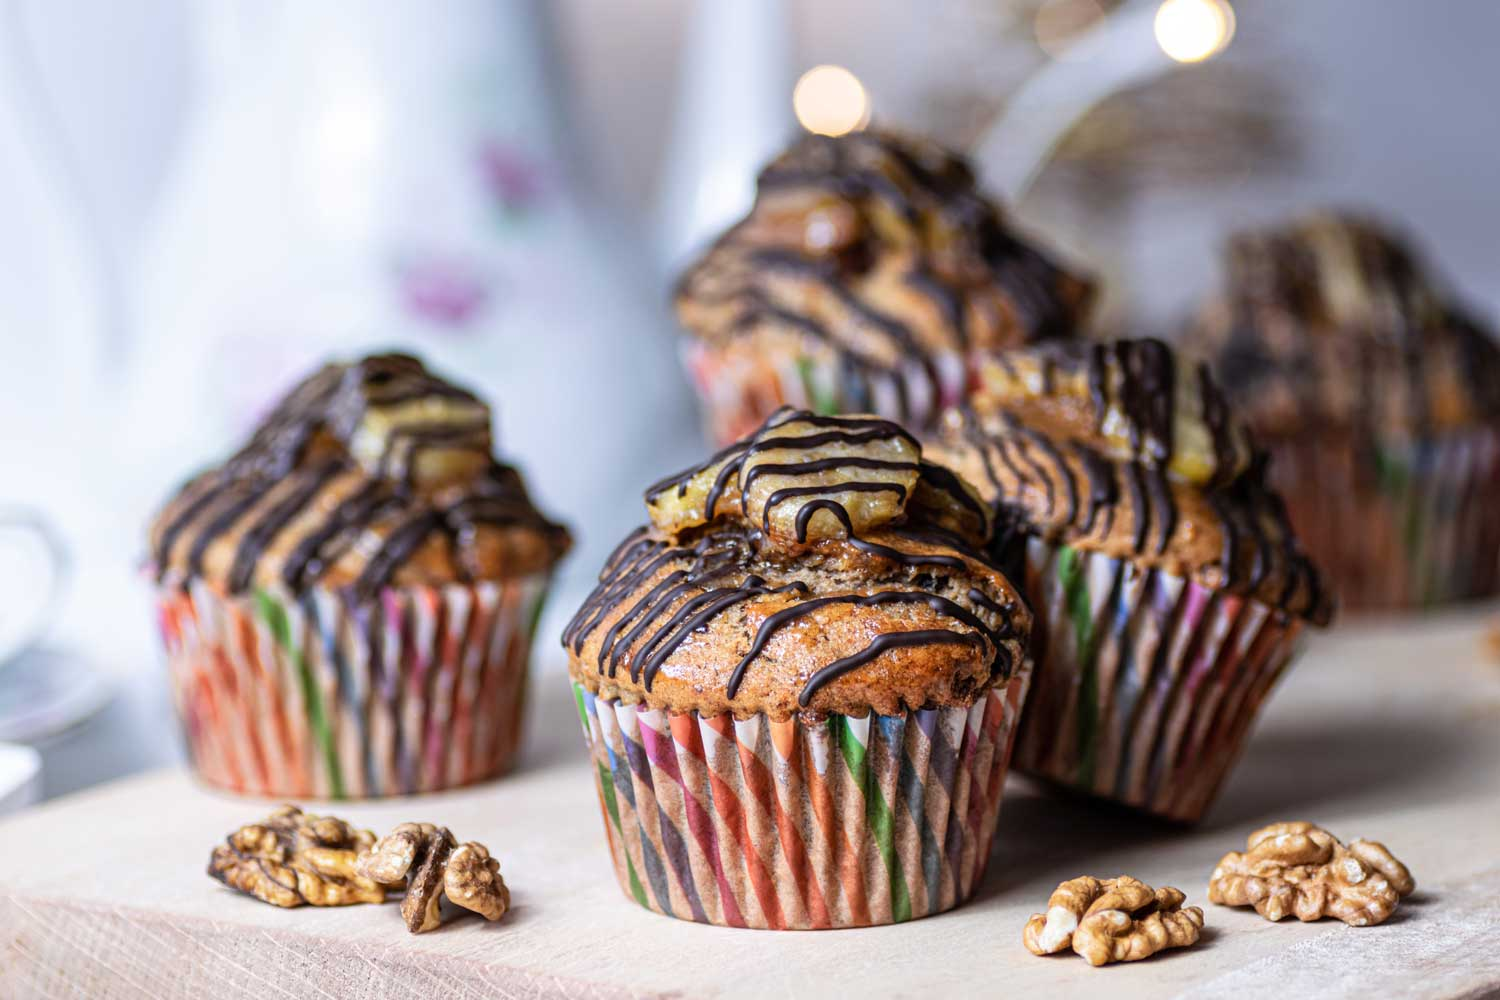 Easy banana muffins with chocolate drizzle